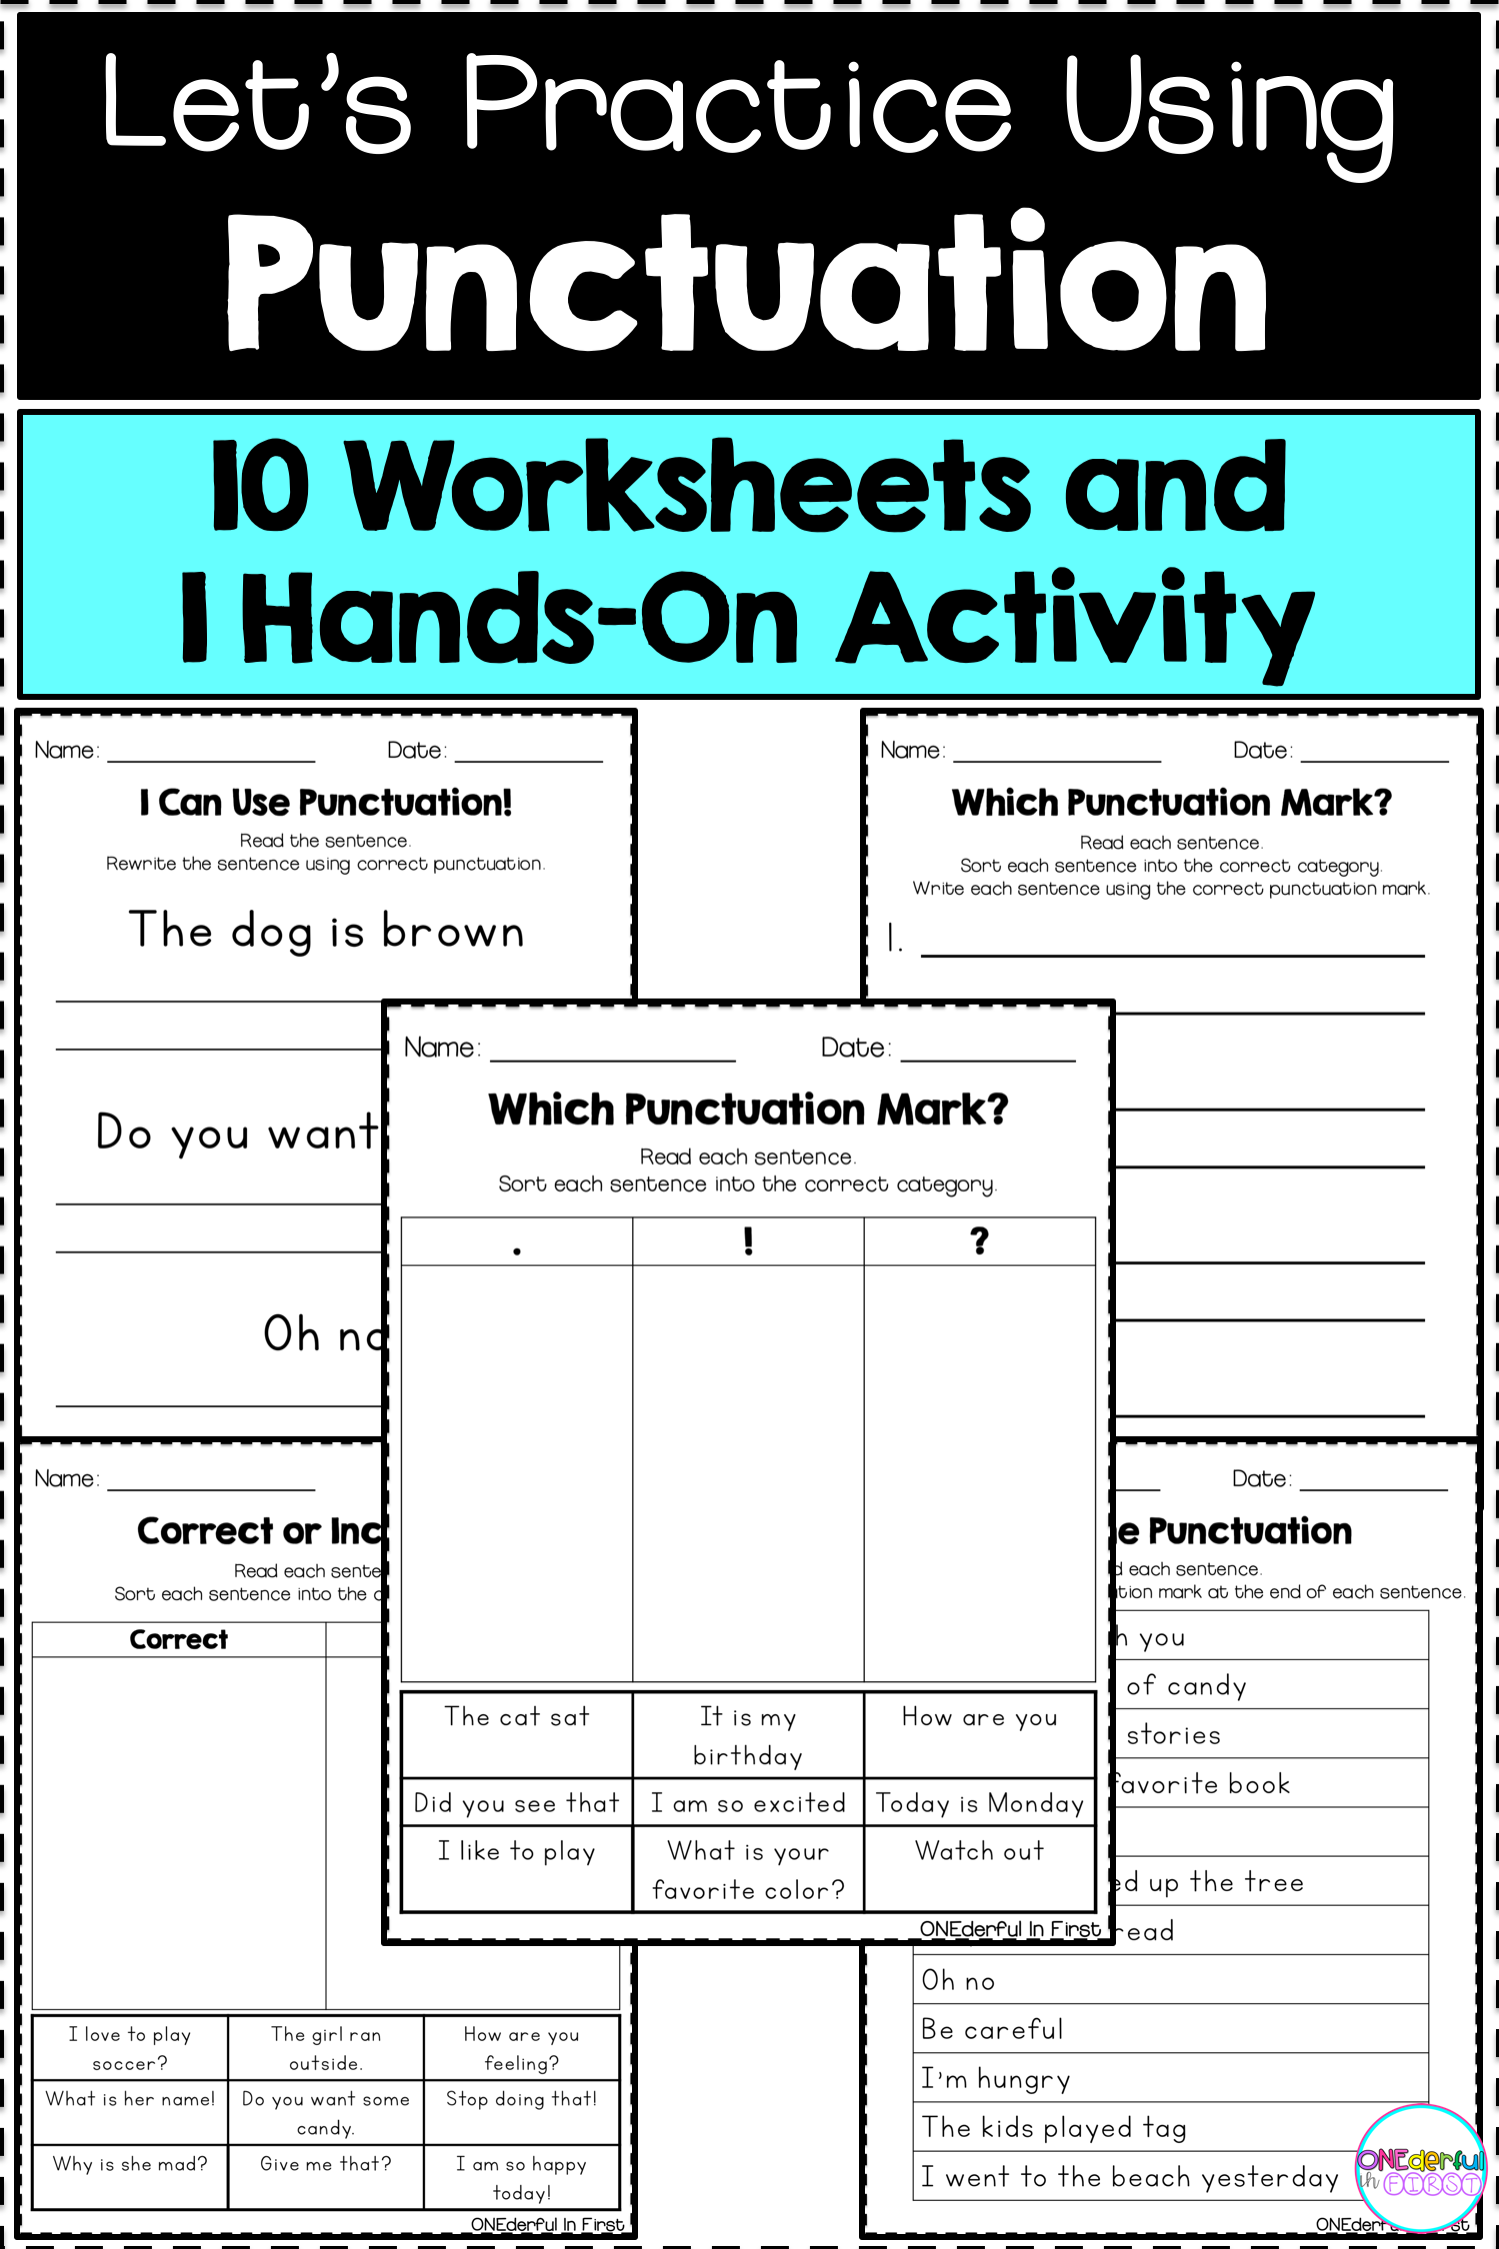 Punctuation - Worksheets and Hands-On Activity   Punctuation worksheets [ 2249 x 1499 Pixel ]